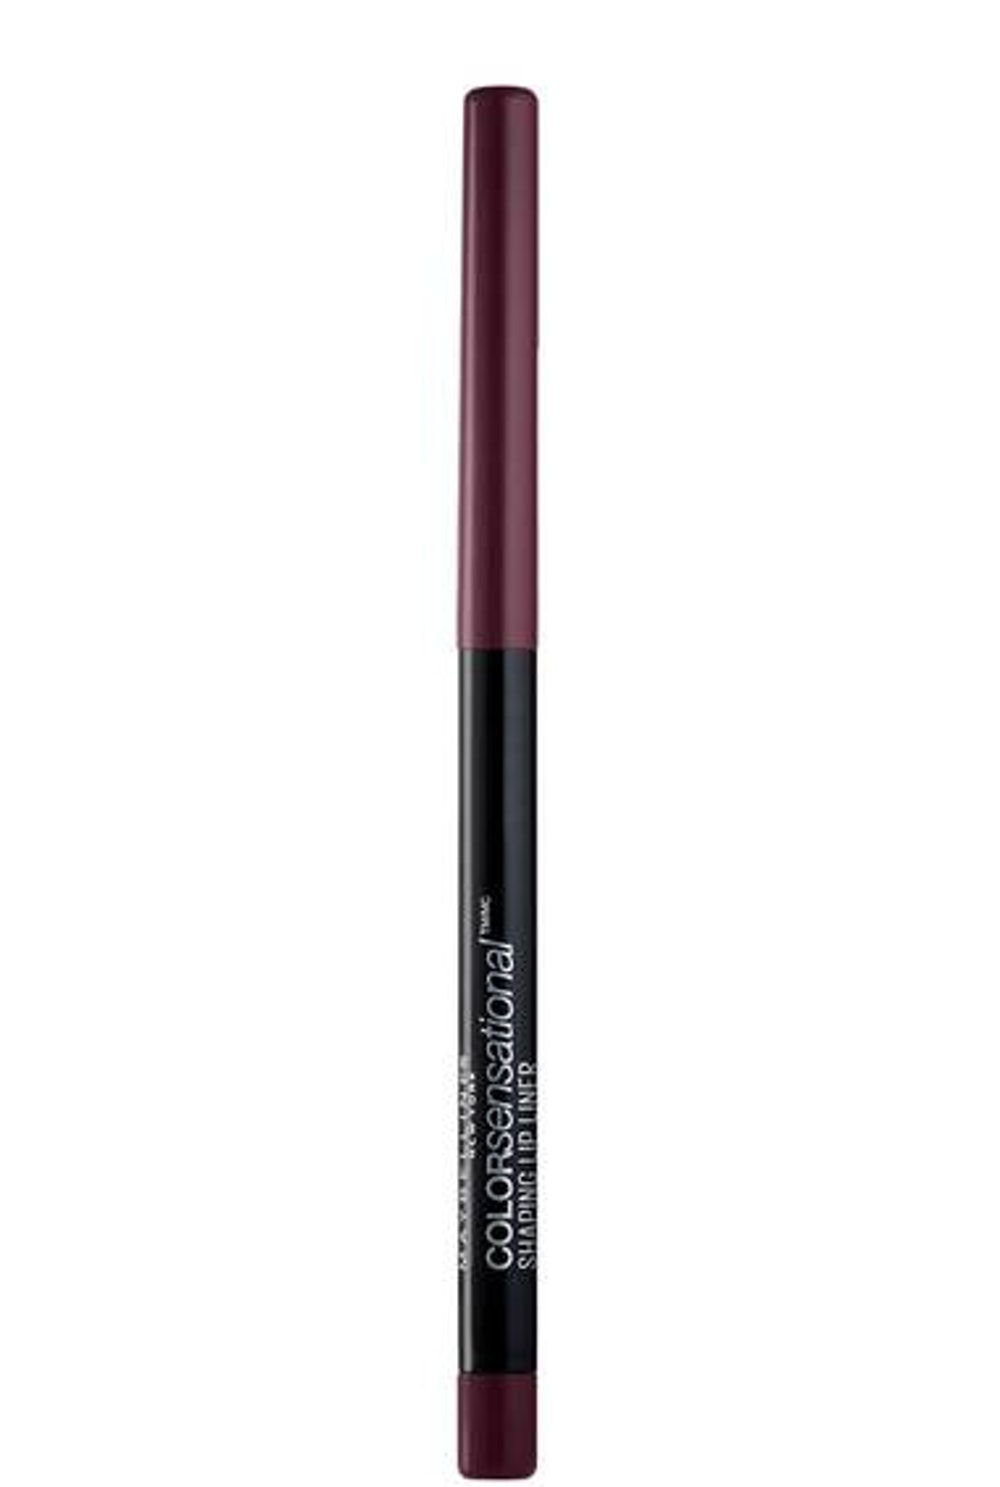 Maybelline Color Sensational Shaping Lip Liner in Rich Wine